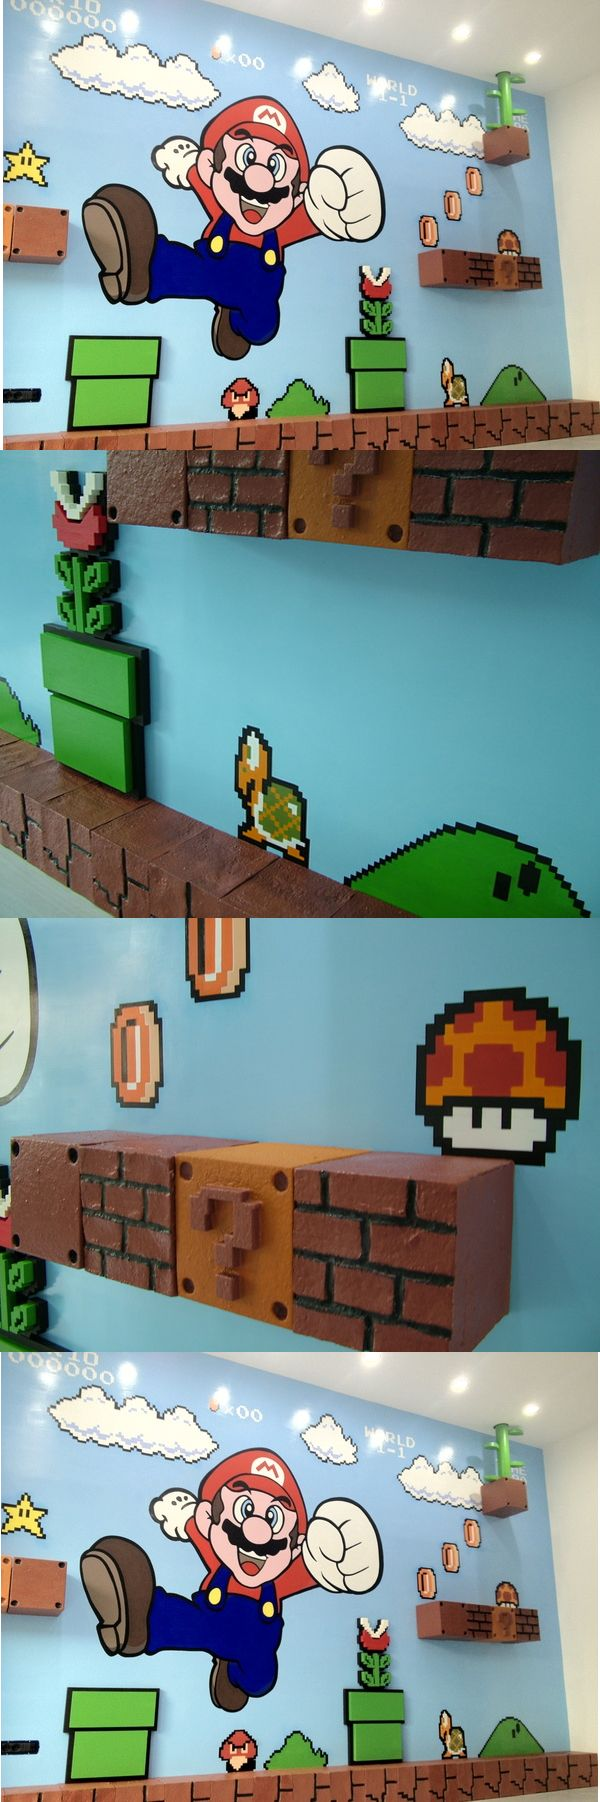 Amazing 3D Super Mario Bros Mural 6                              …